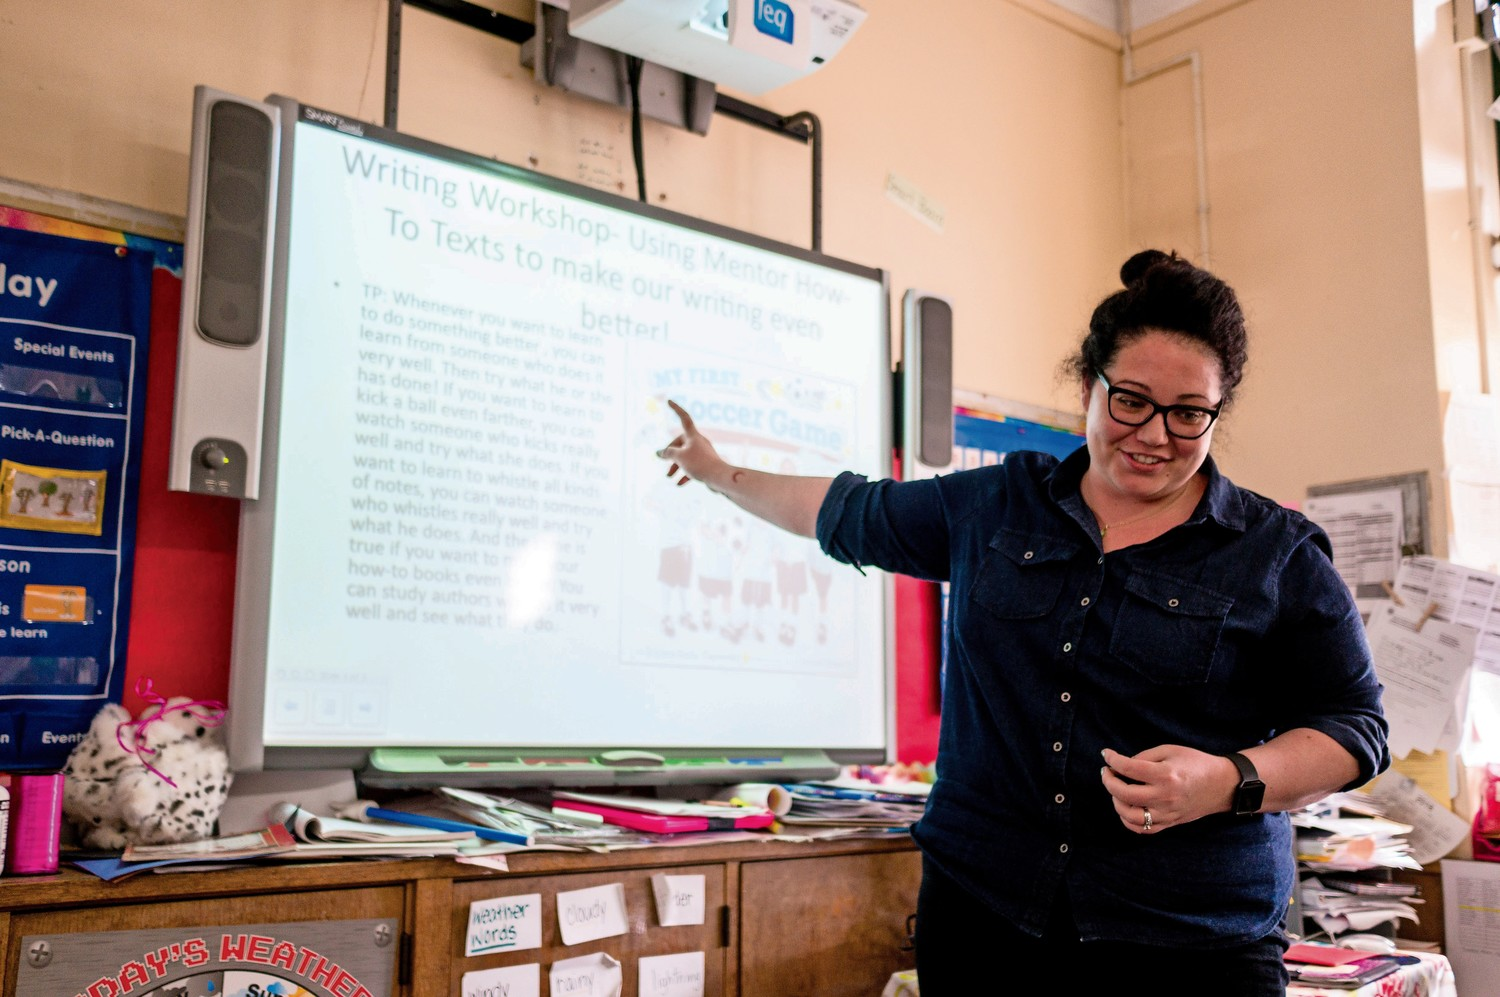 At P.S. 24, smartboards are a part of classrooms. Elsa Gilheany, a kindergarten teacher, uses a smartboard to help her students learn.